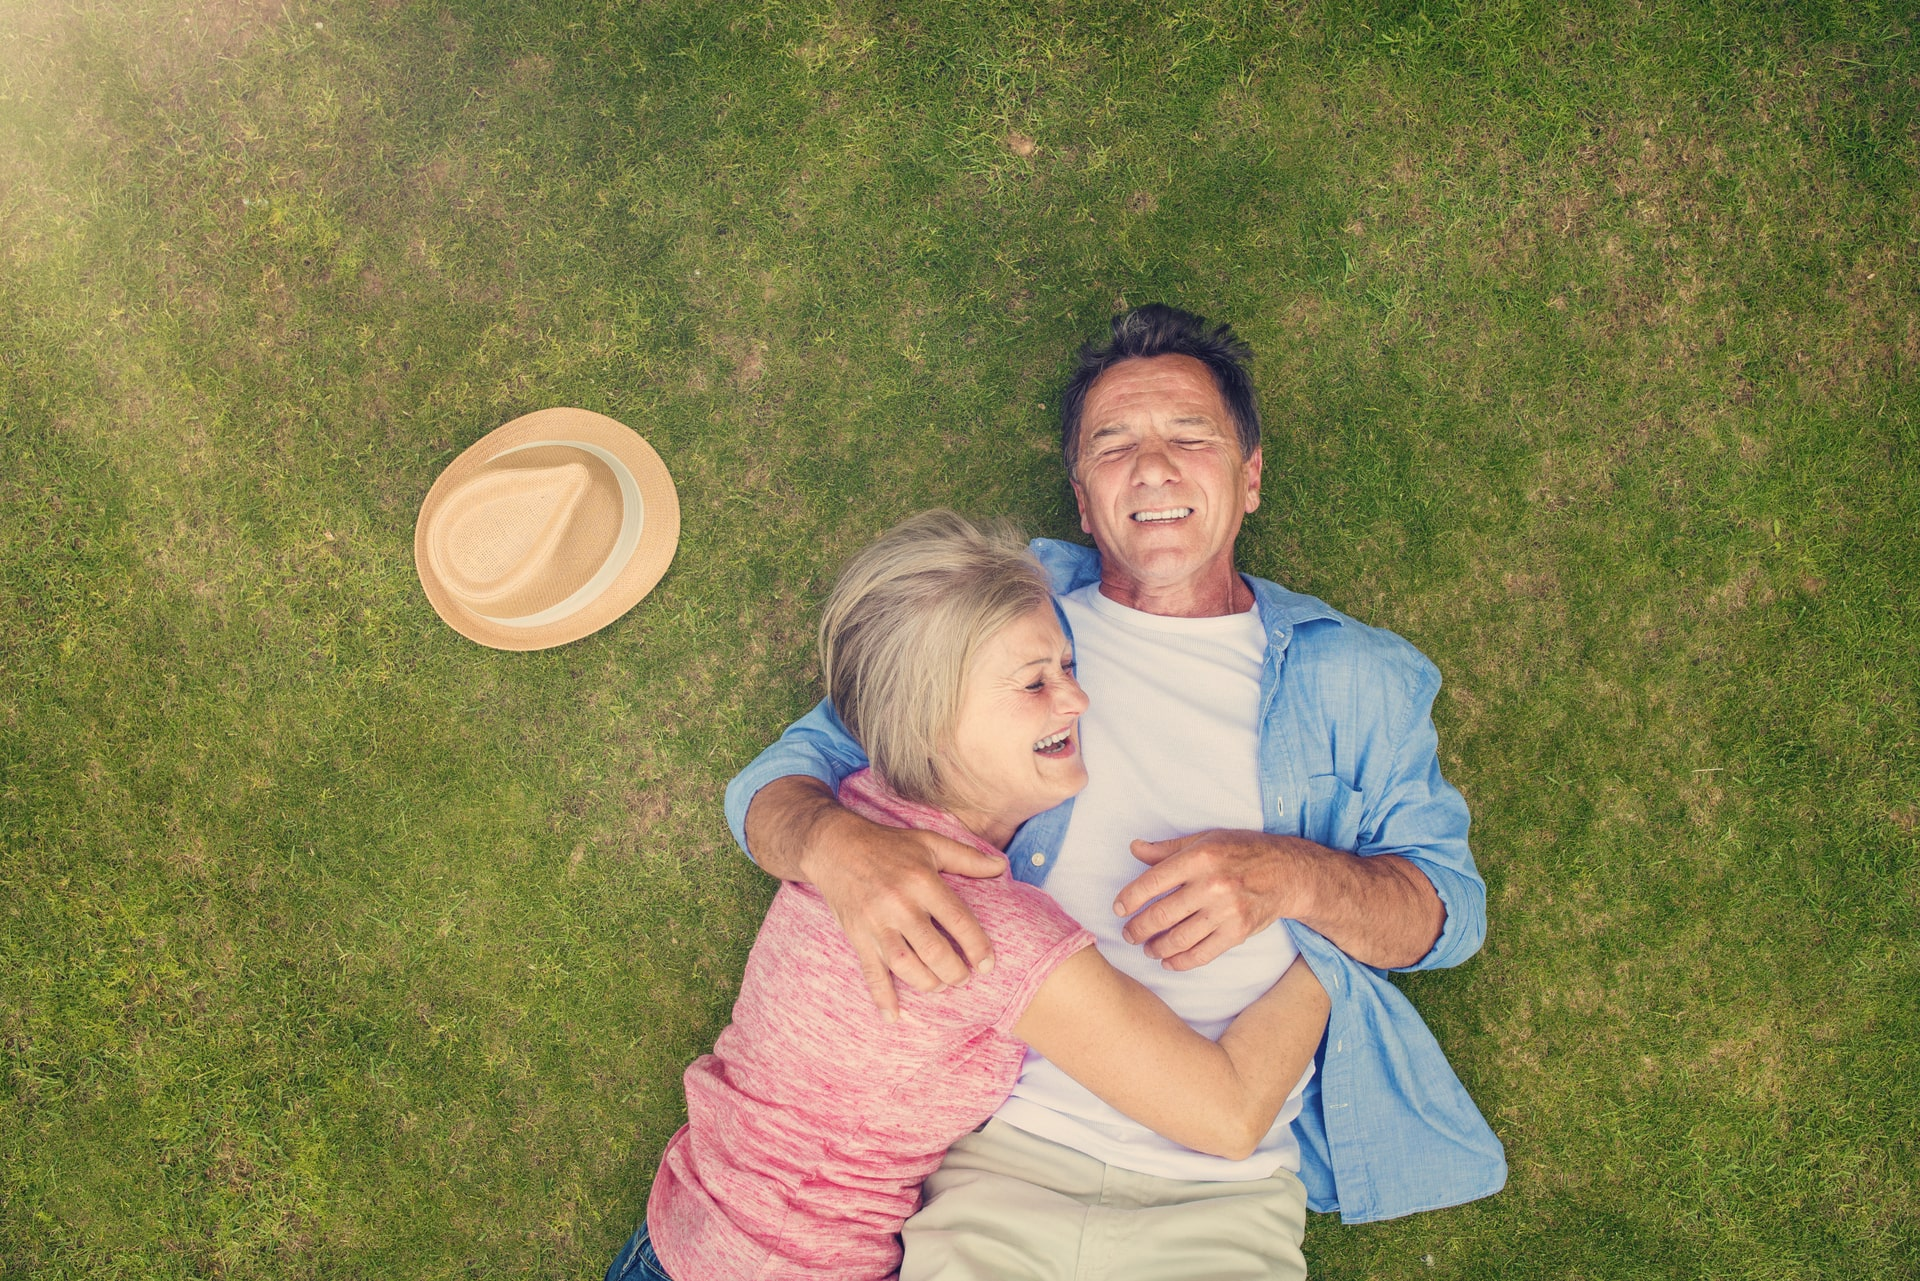 Old couple lying down on green grass smiling looking towards the sky and filled with happiness and joy